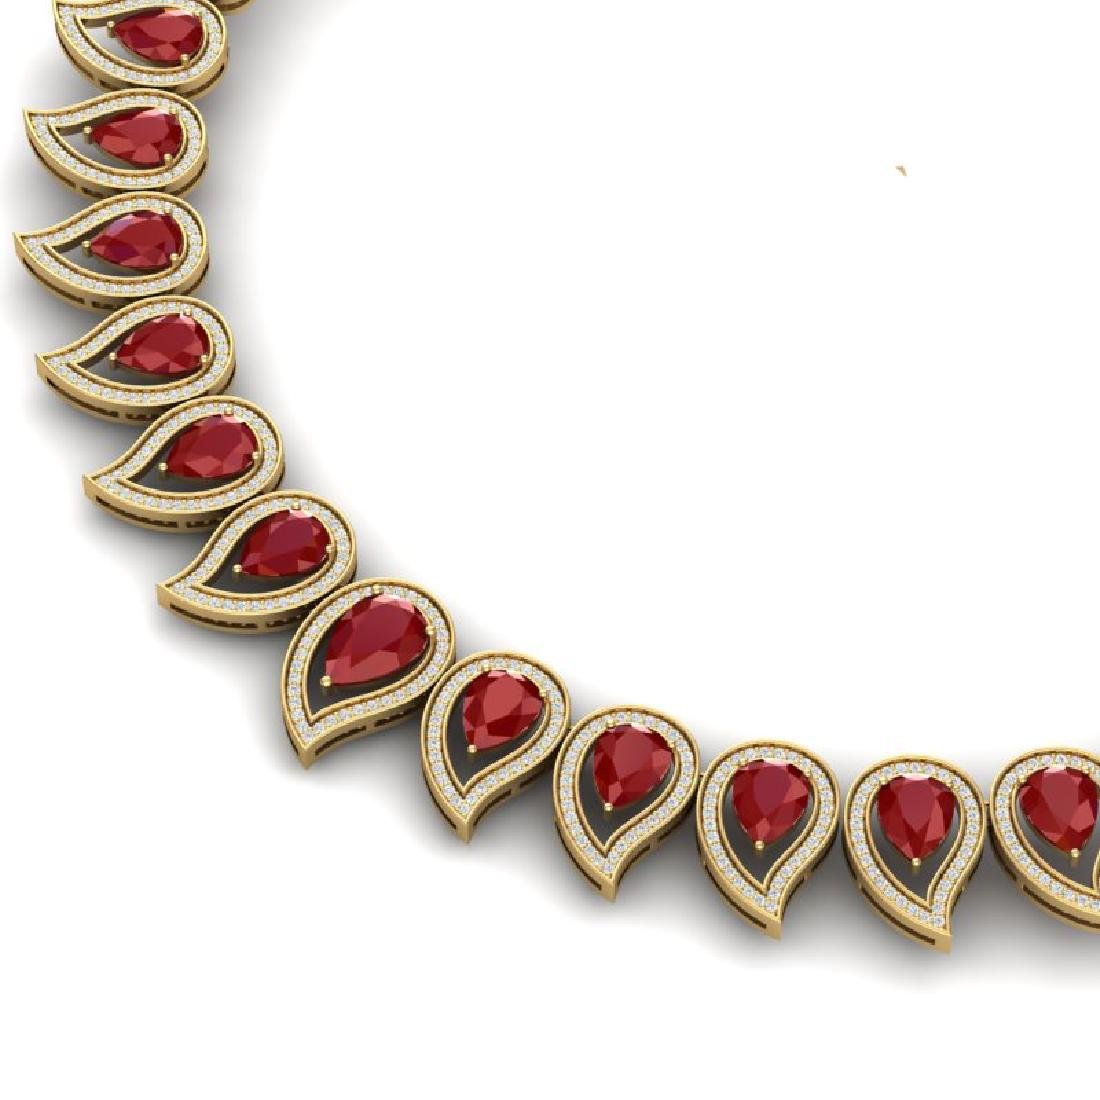 33.4 CTW Royalty Designer Ruby & VS Diamond Necklace - 2